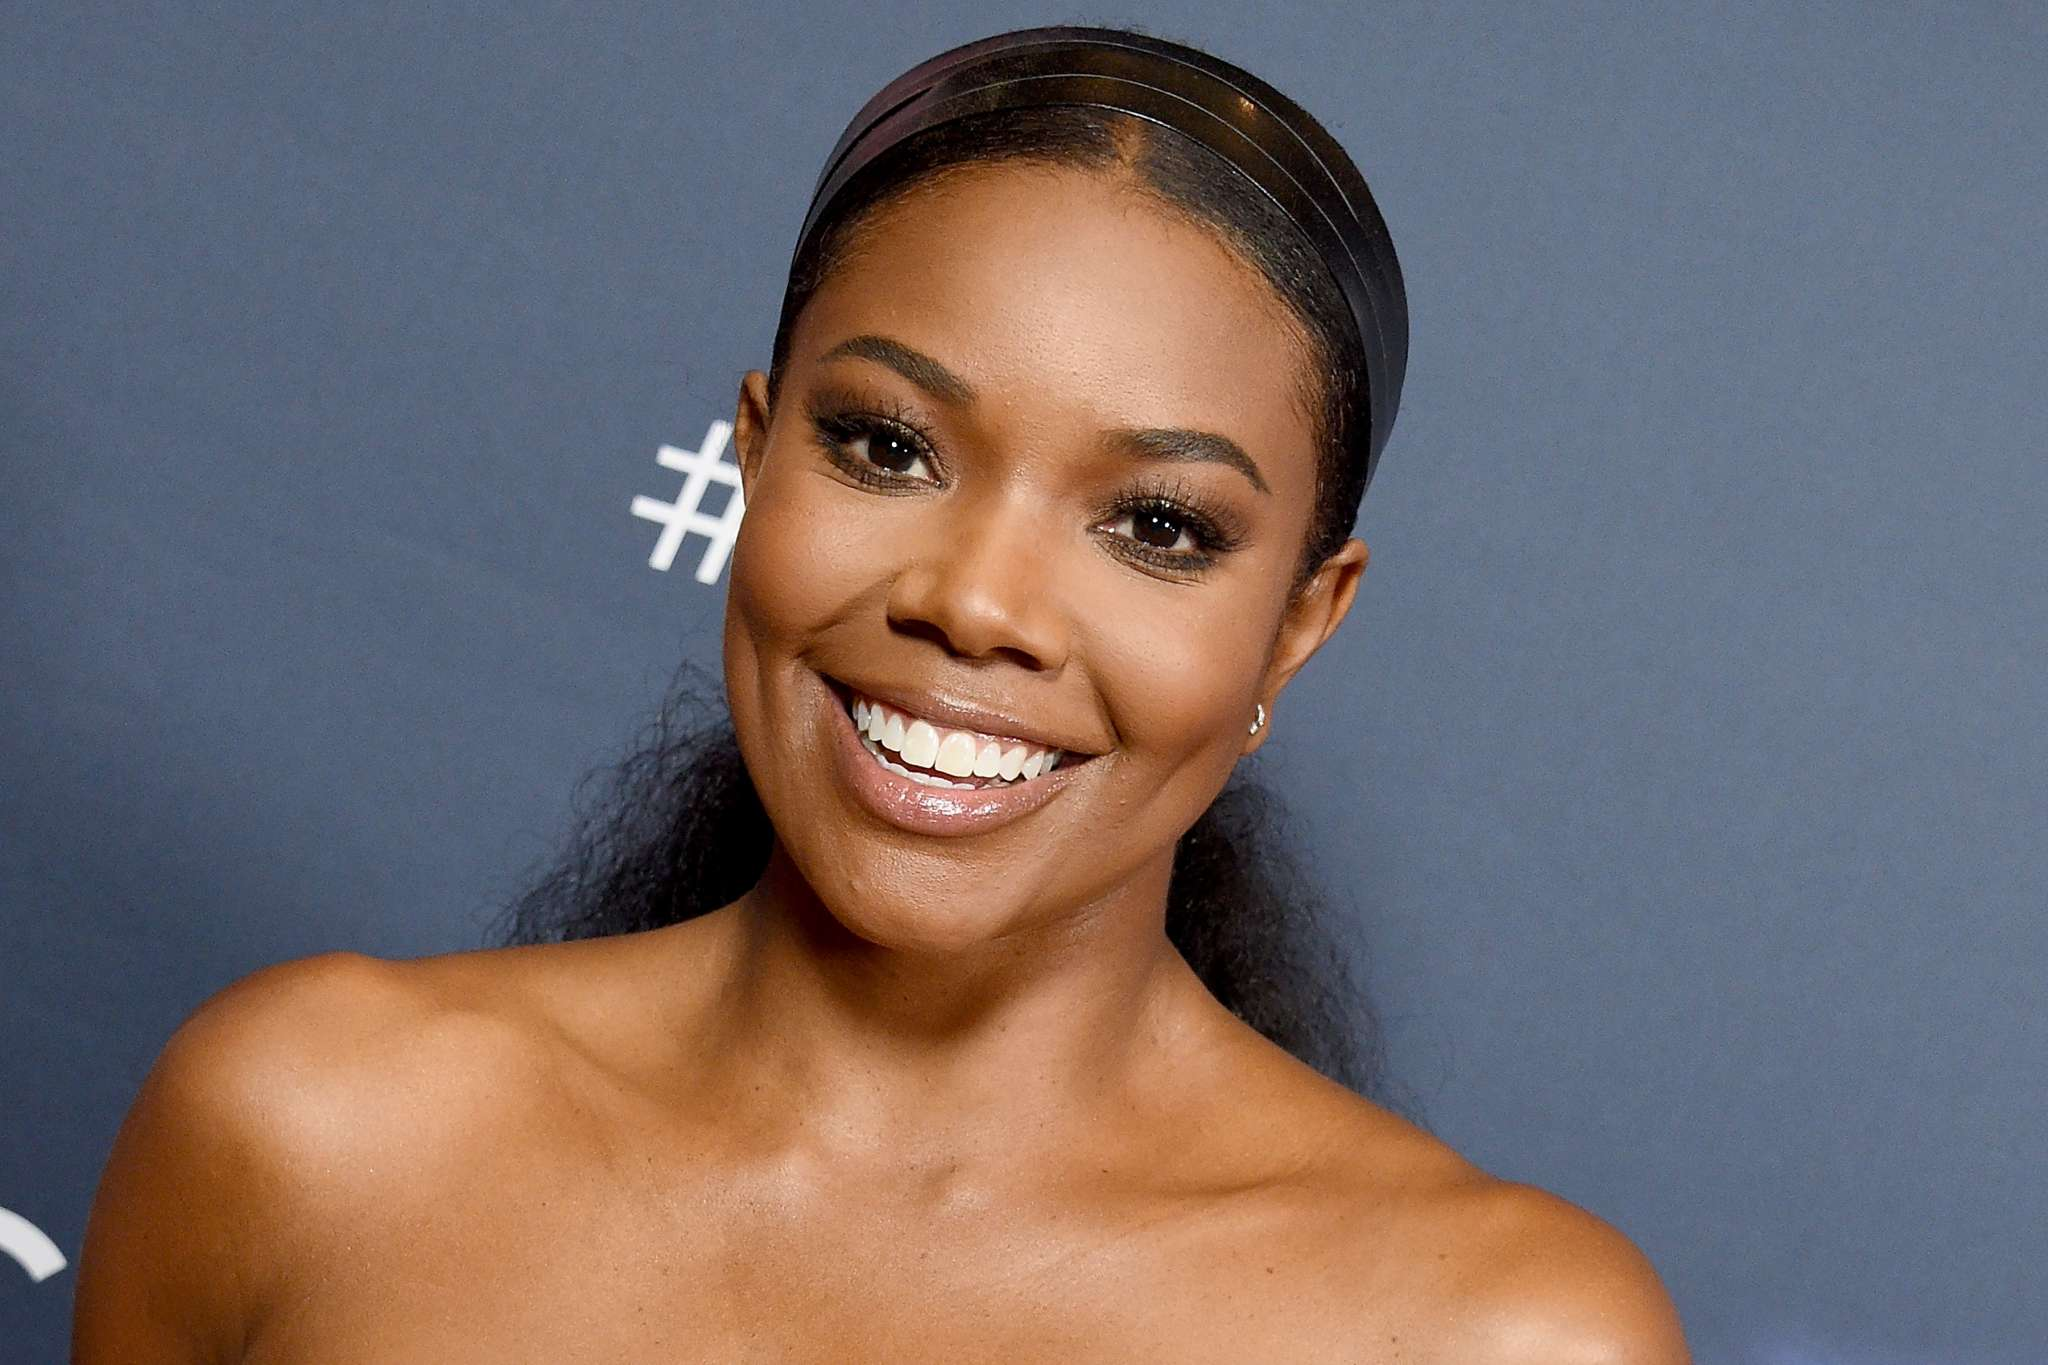 Gabrielle Union Shares Her Favorite Photos Of Her Mother – See Them Here